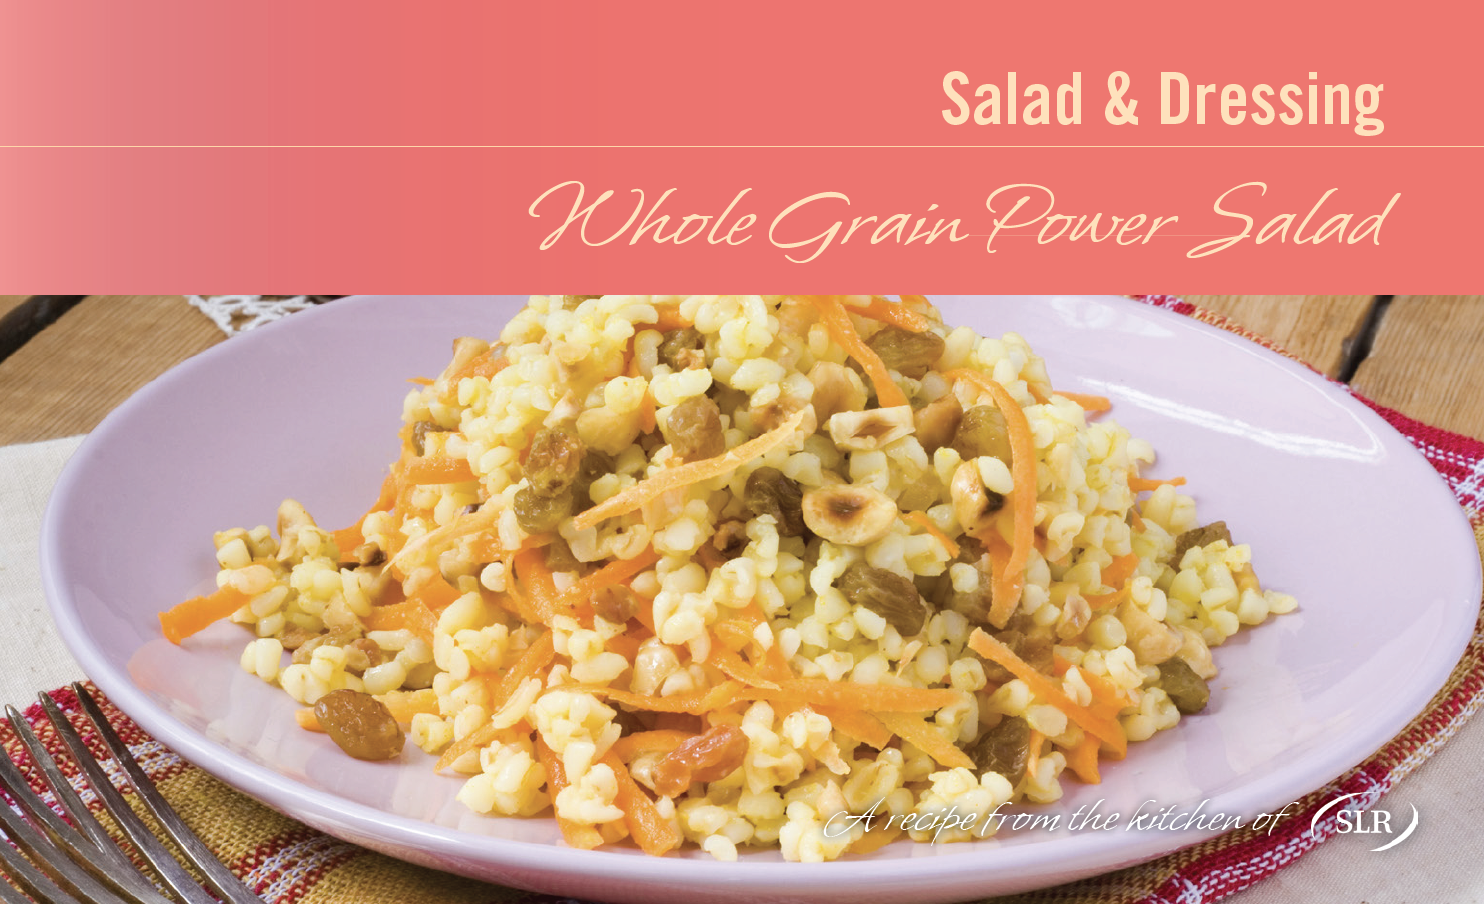 Whole Grain Power Salad recipe card